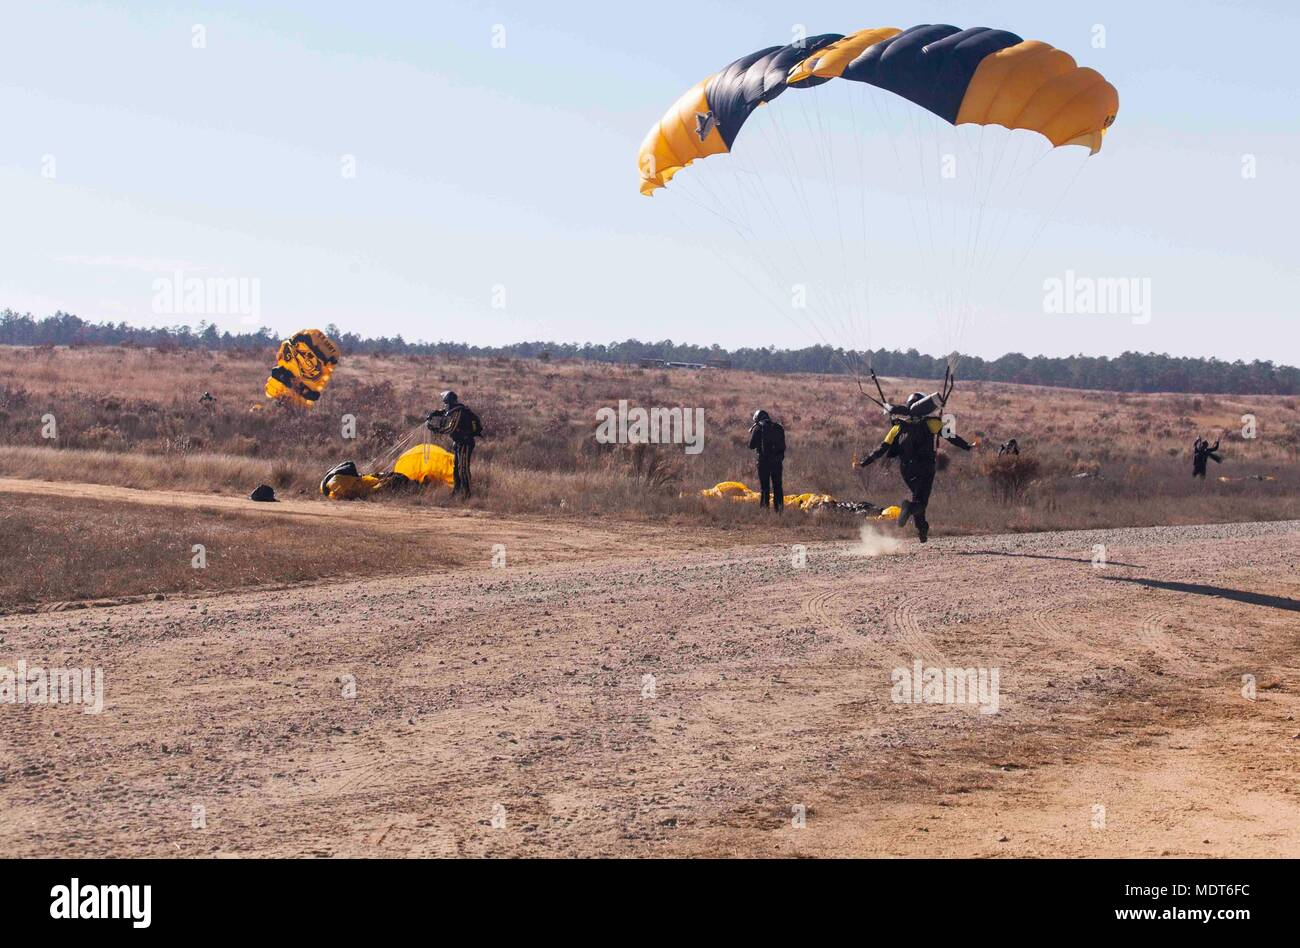 A U S  Army paratrooper from the U S  Army Parachute Team